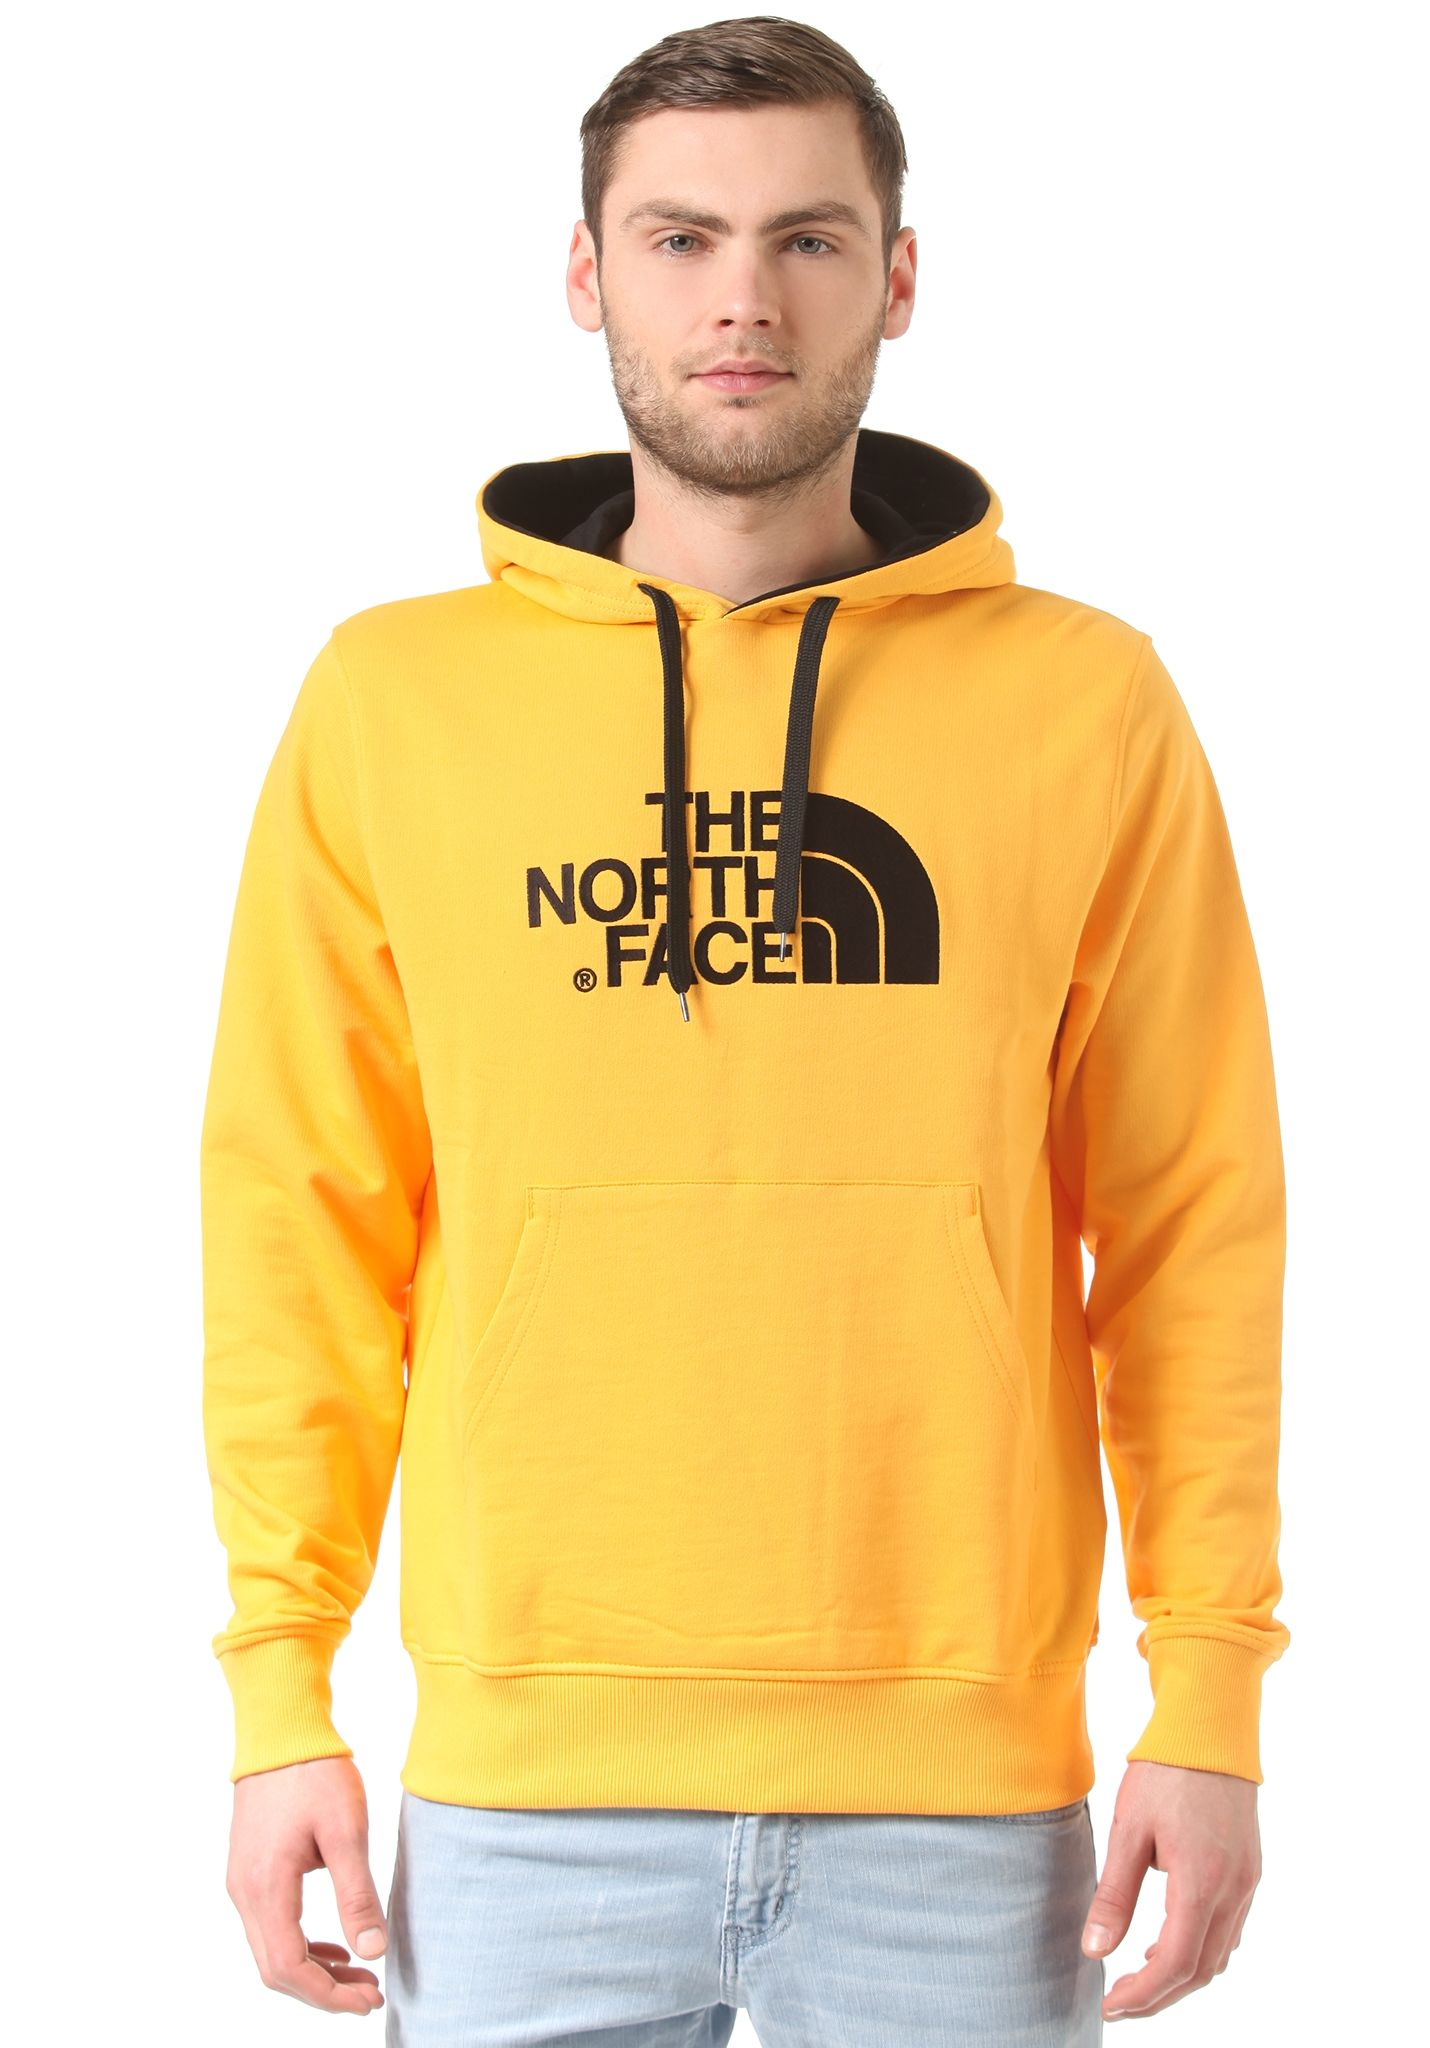 Top THE NORTH FACE Drew Peak - Sweat à capuche pour Homme - Jaune  TV06